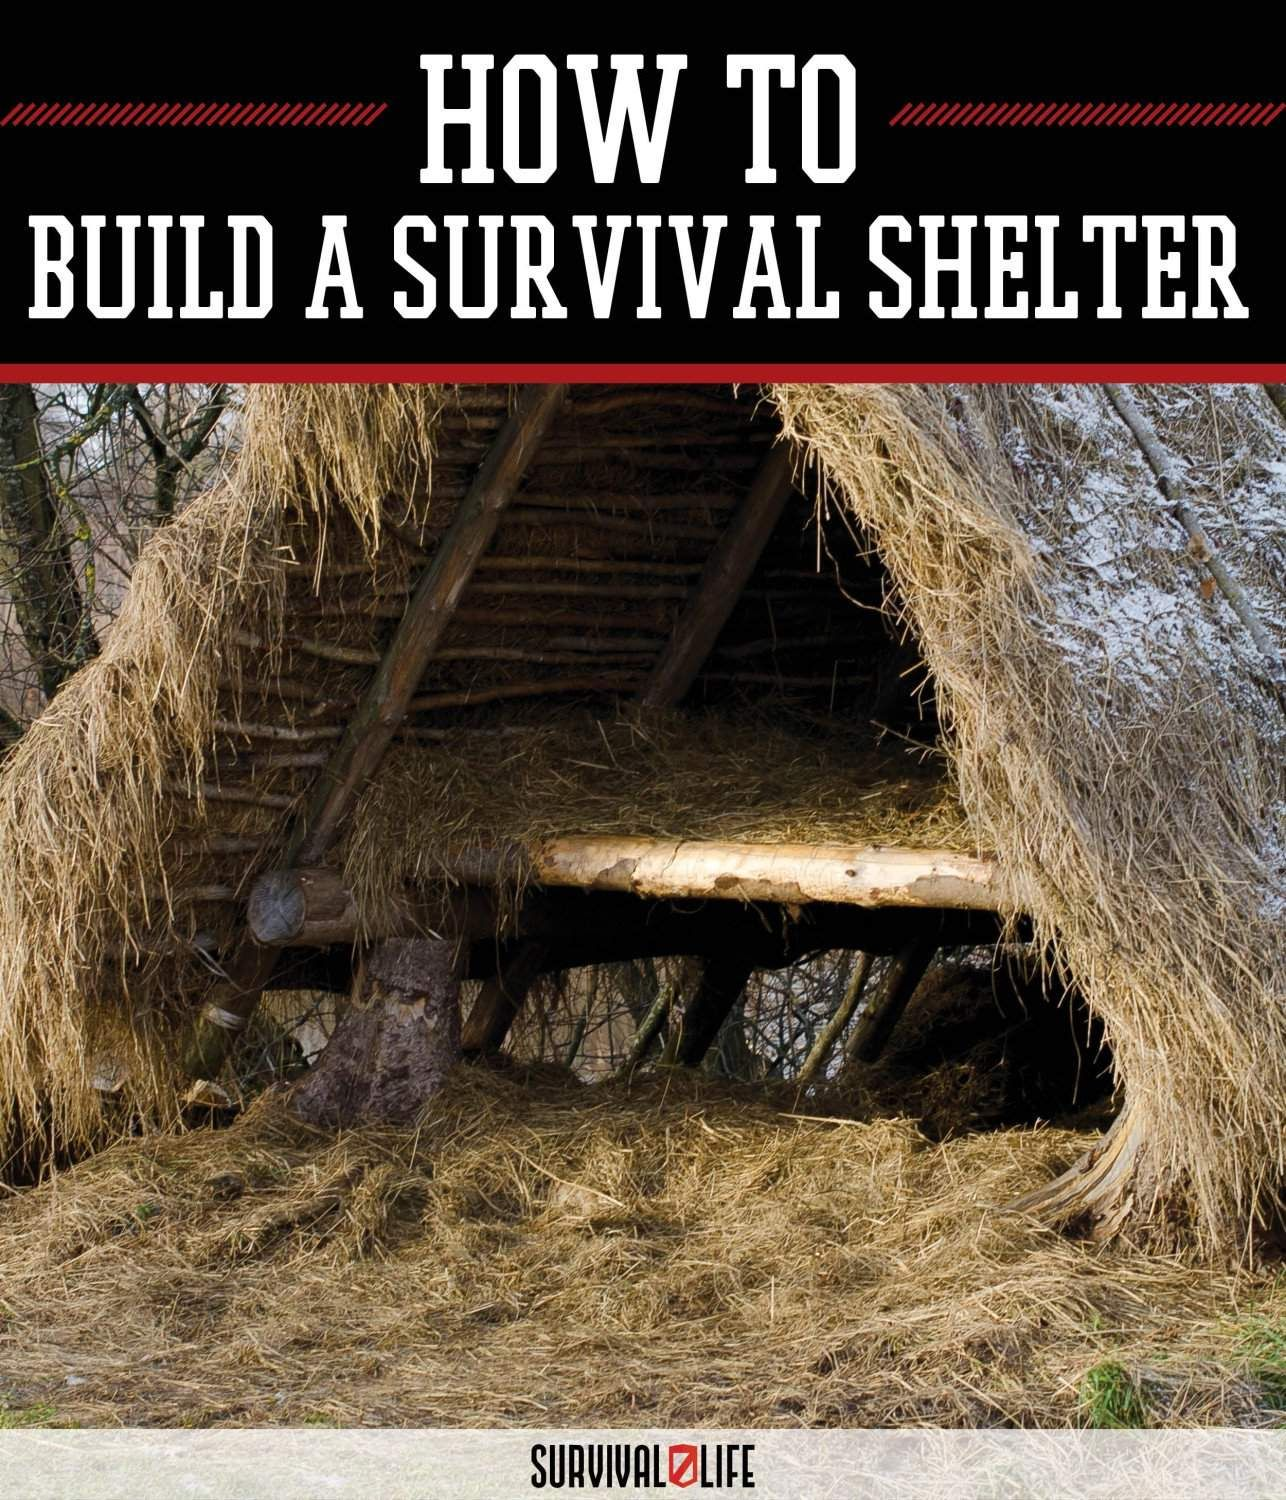 Disaster Survival Skills: The California Survival School: Survival Shelter Tutorial